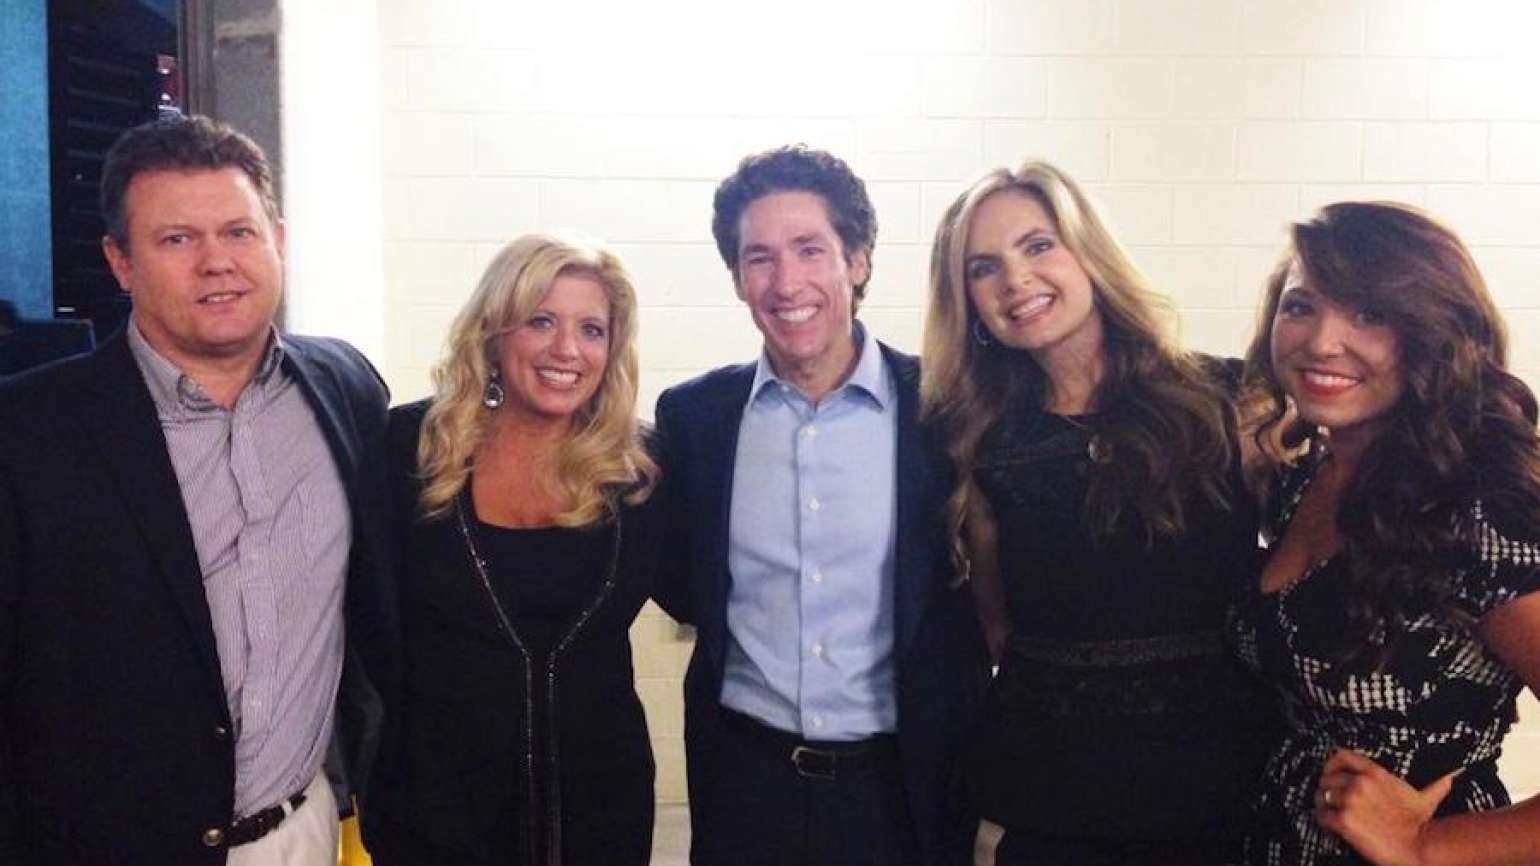 Michelle with Joel and Victoria Osteen.